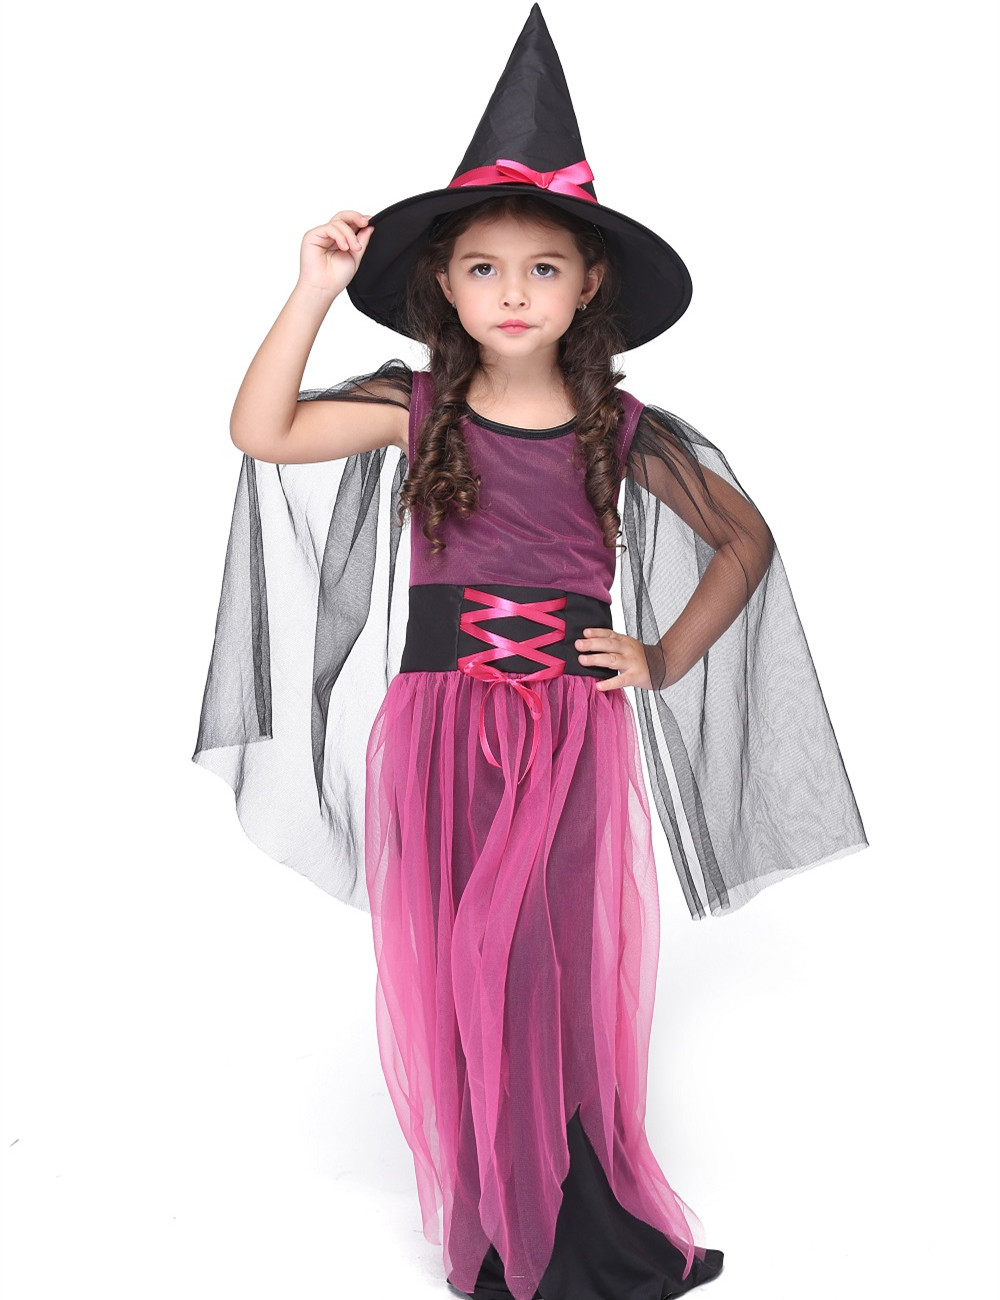 Hot Selling Girl Witch Dress Costume Halloween Costume For Kids Stage & Dance Wear Toddler Long Dress Party Cosplay Rose Red